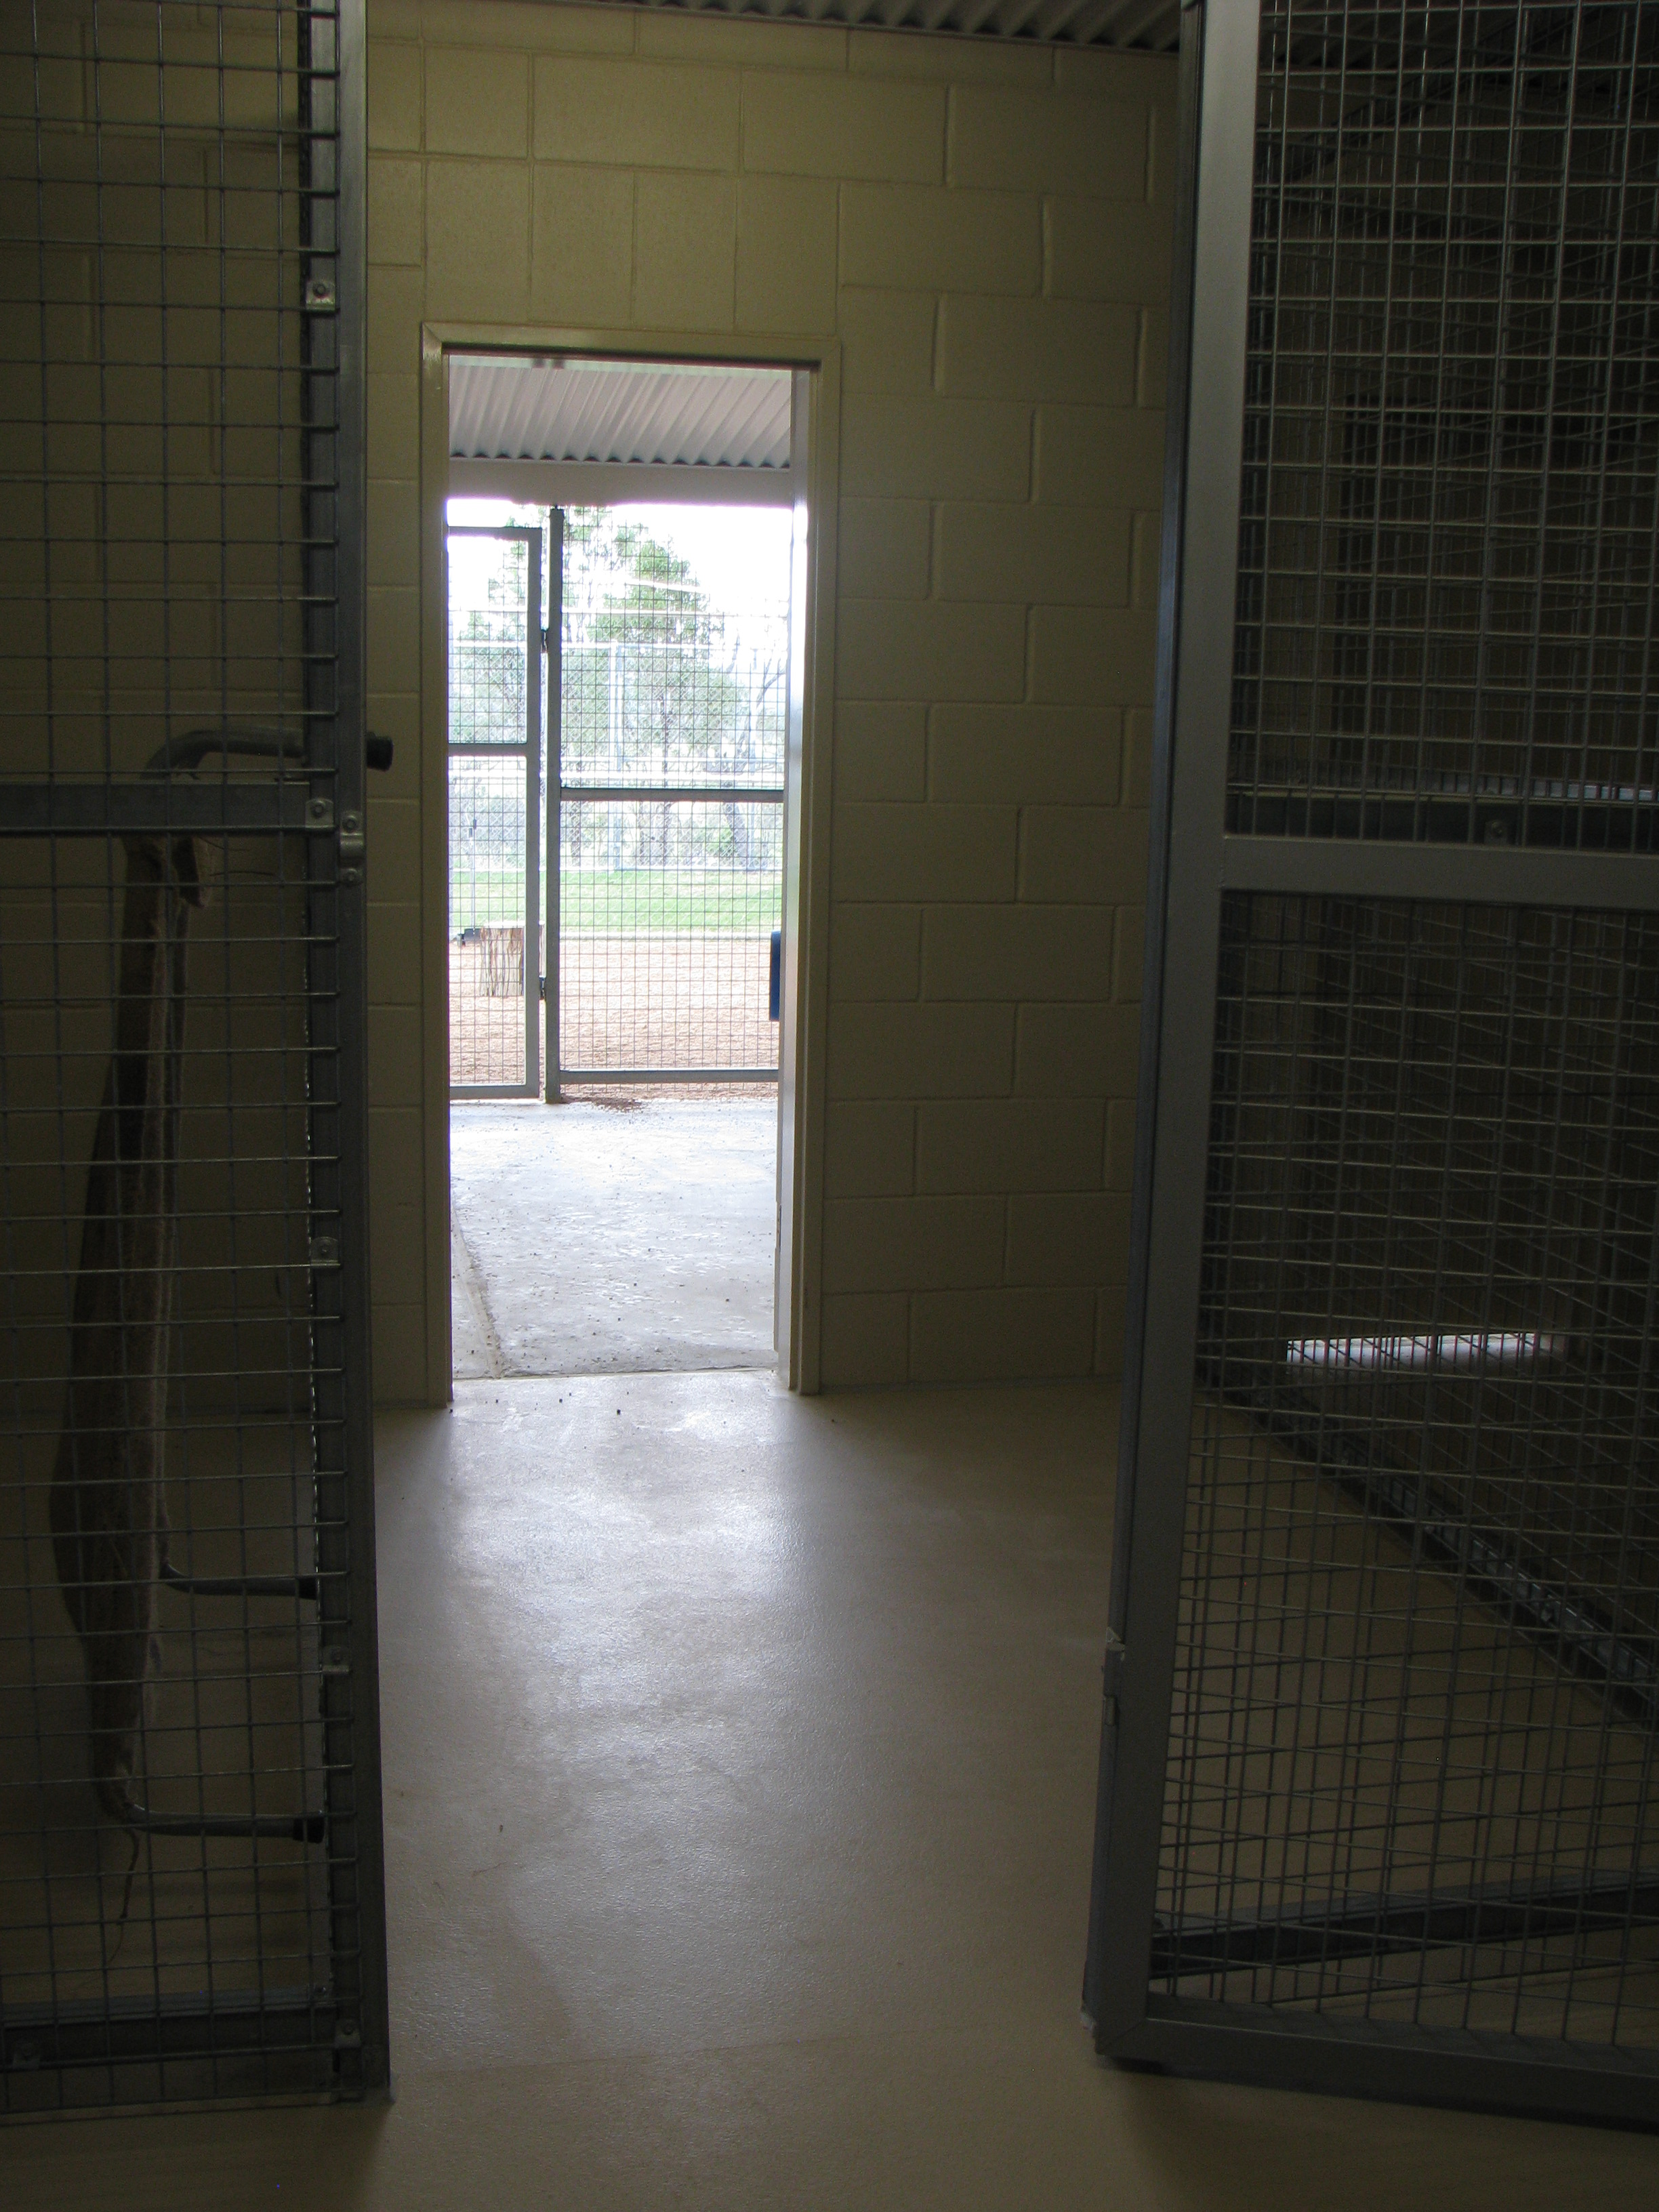 There is an internal kennel and external kennel